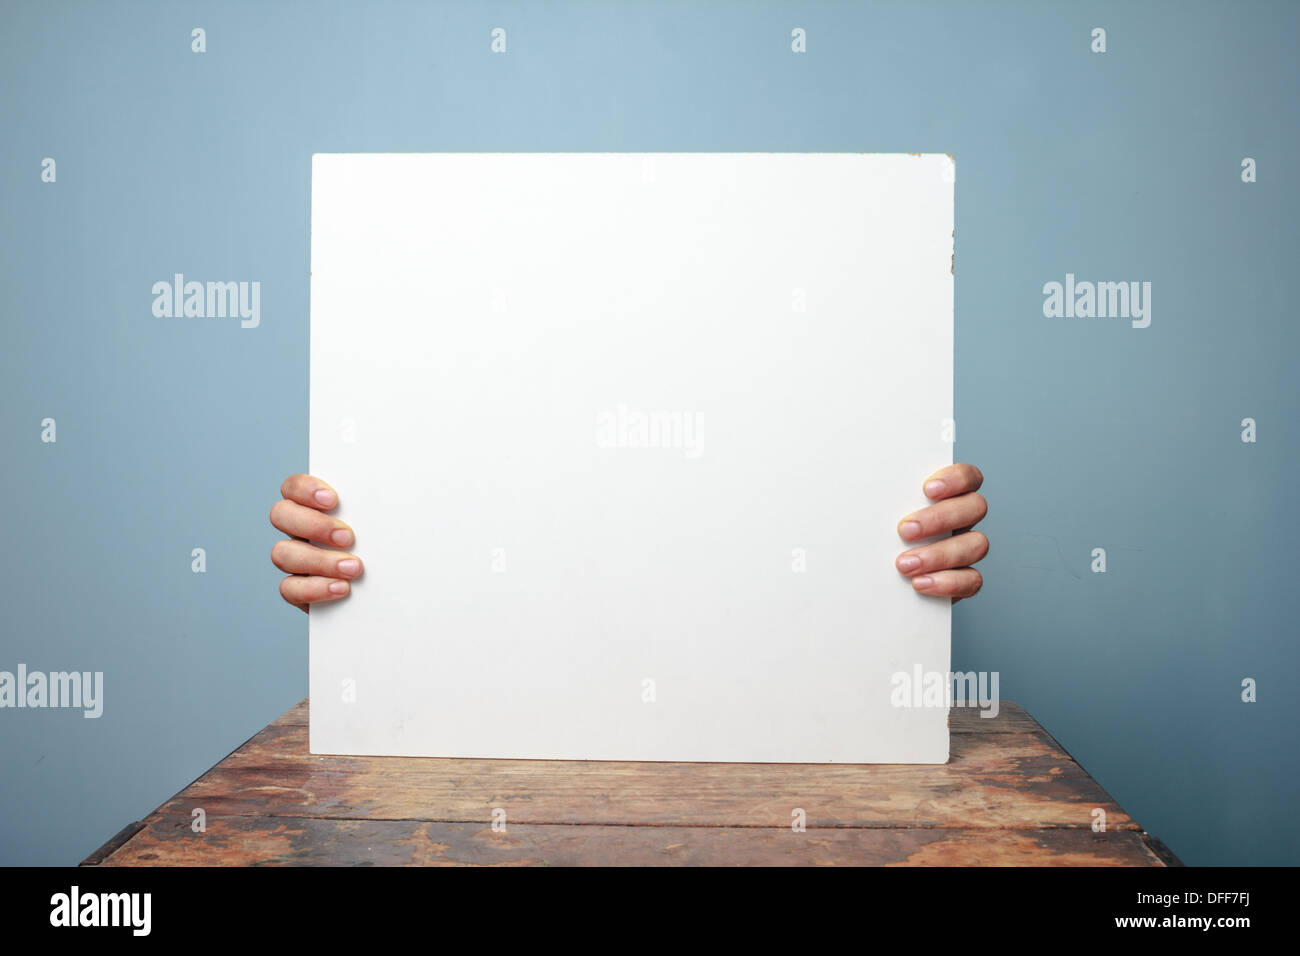 Young man sitting at a table and holding a blank white sign, only his fingers are visible - Stock Image